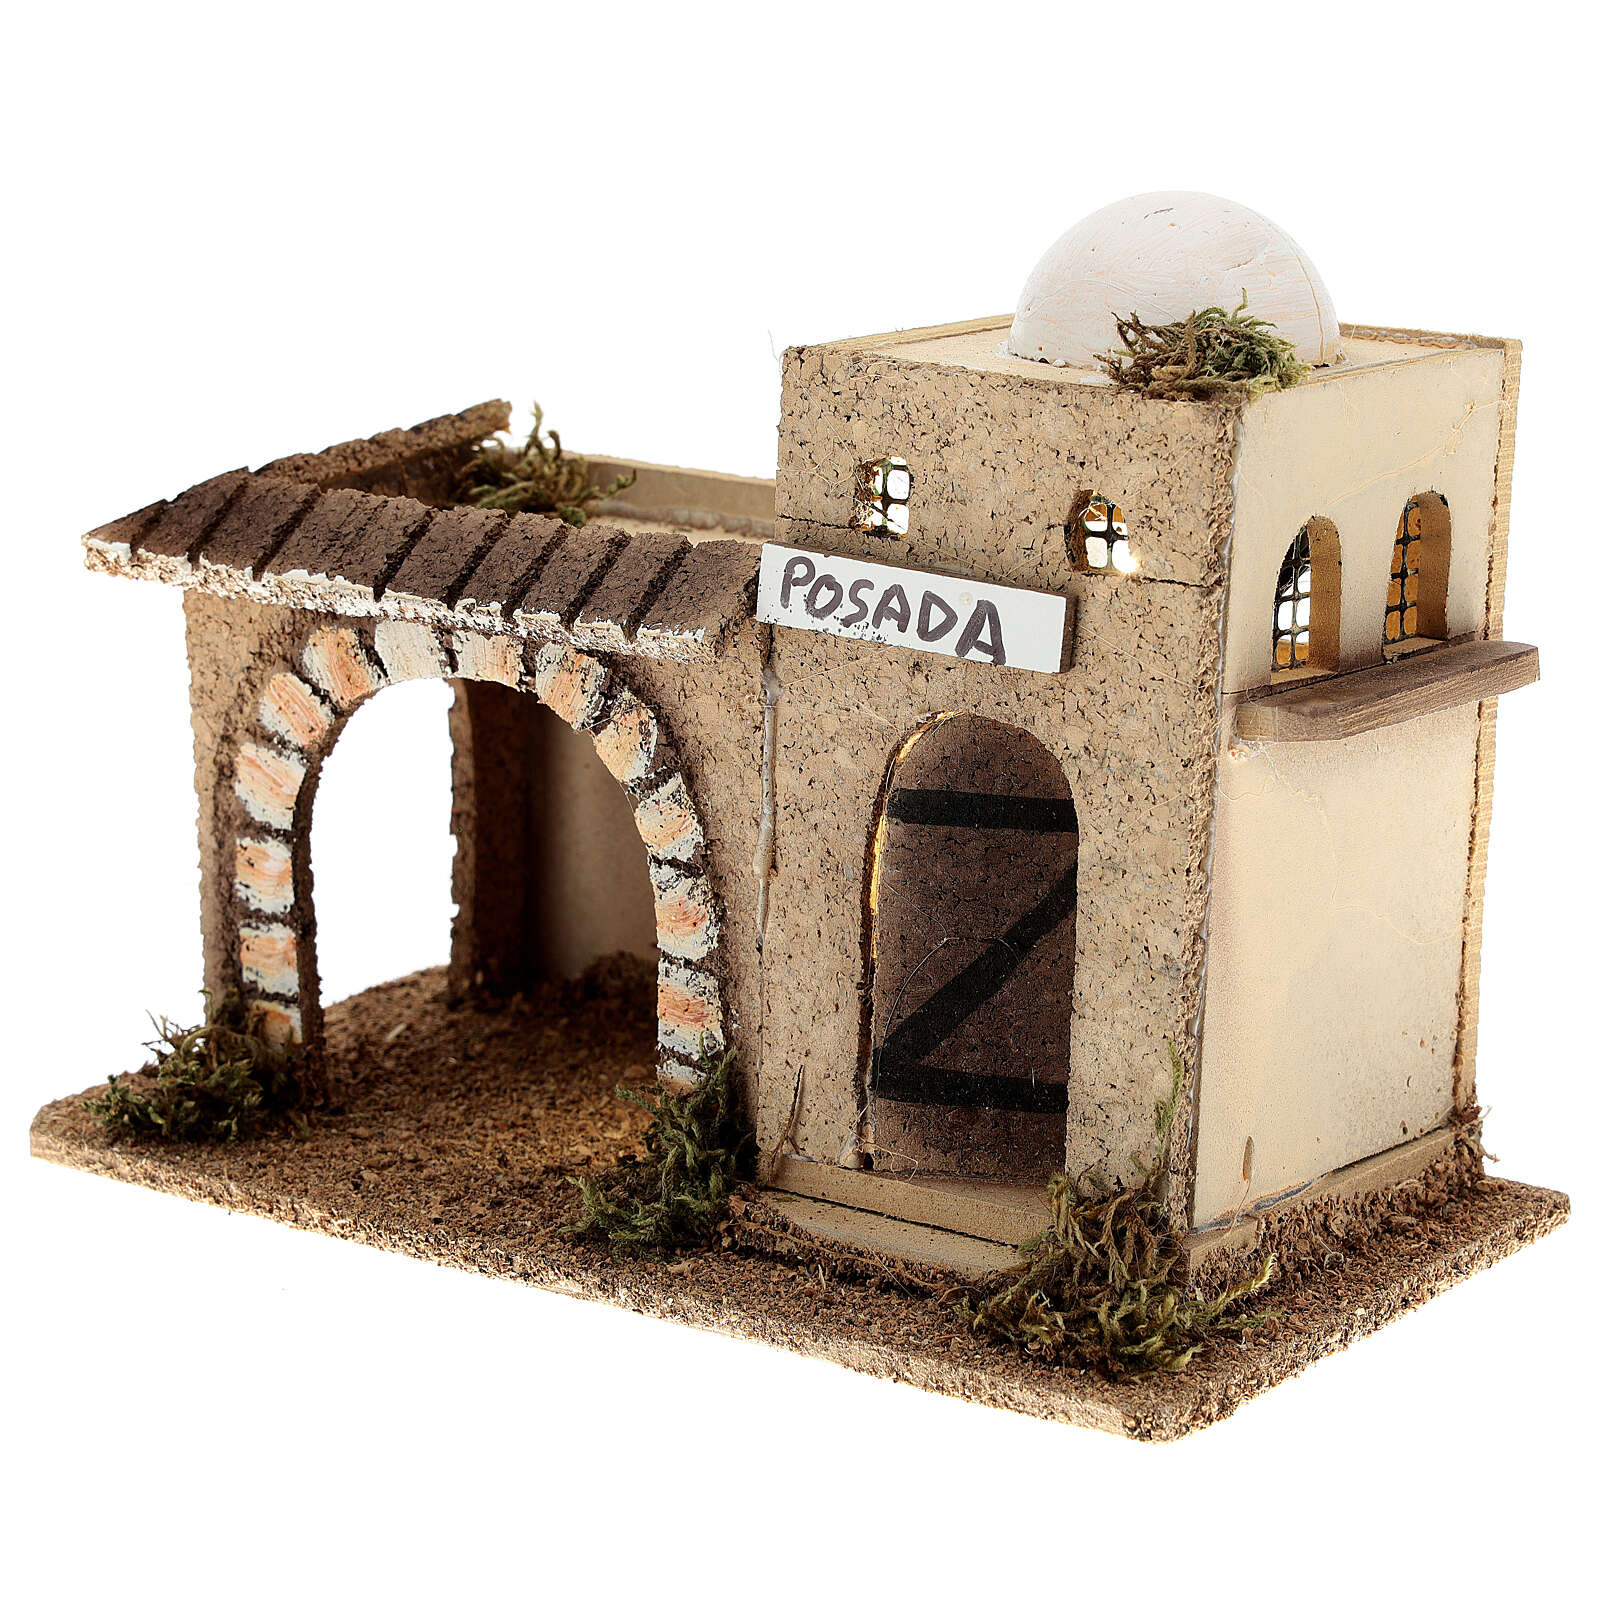 Arabian inn with lights, in cork 15x20x10 cm for 6-8 cm nativity 4